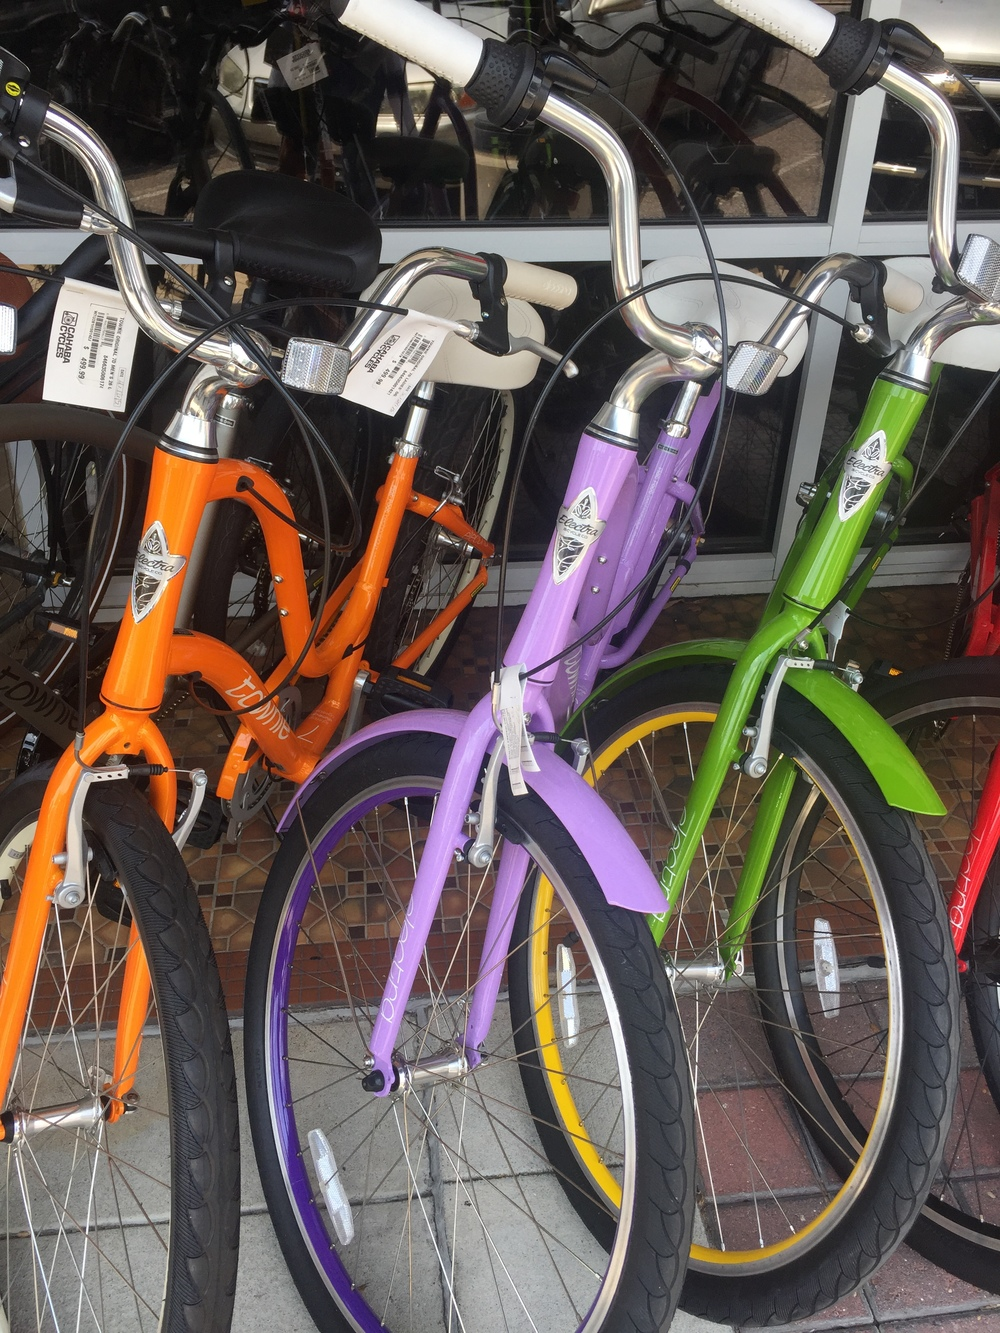 On the way to see the hick's carpets, I also fell in love with these bikes. I really want this purple one, like really want.